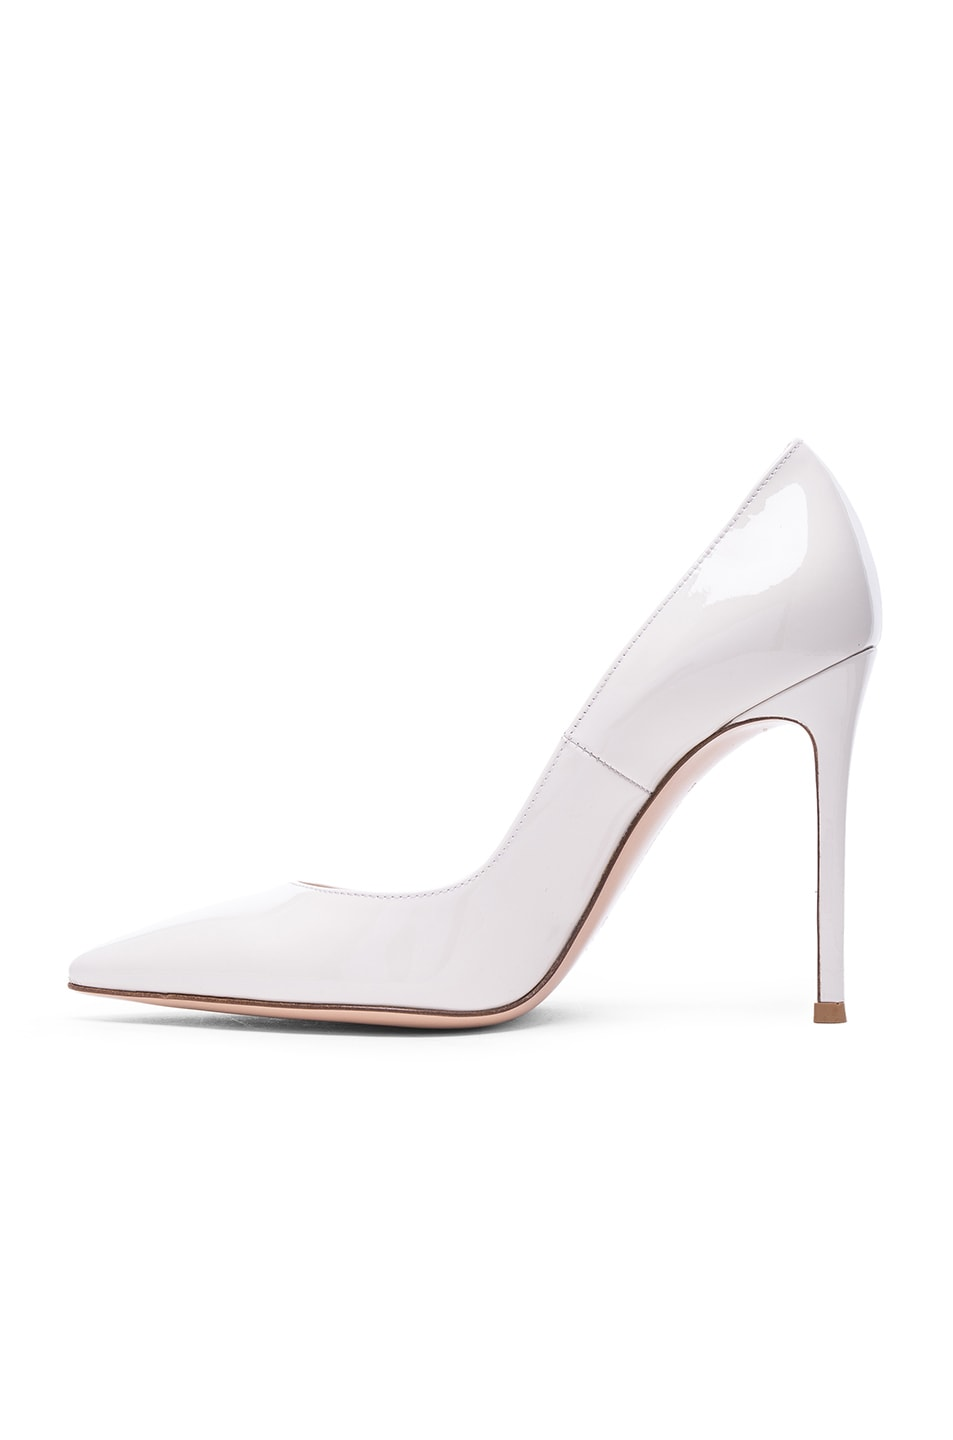 Image 5 of Gianvito Rossi Patent Leather Gianvito Pumps in Off White